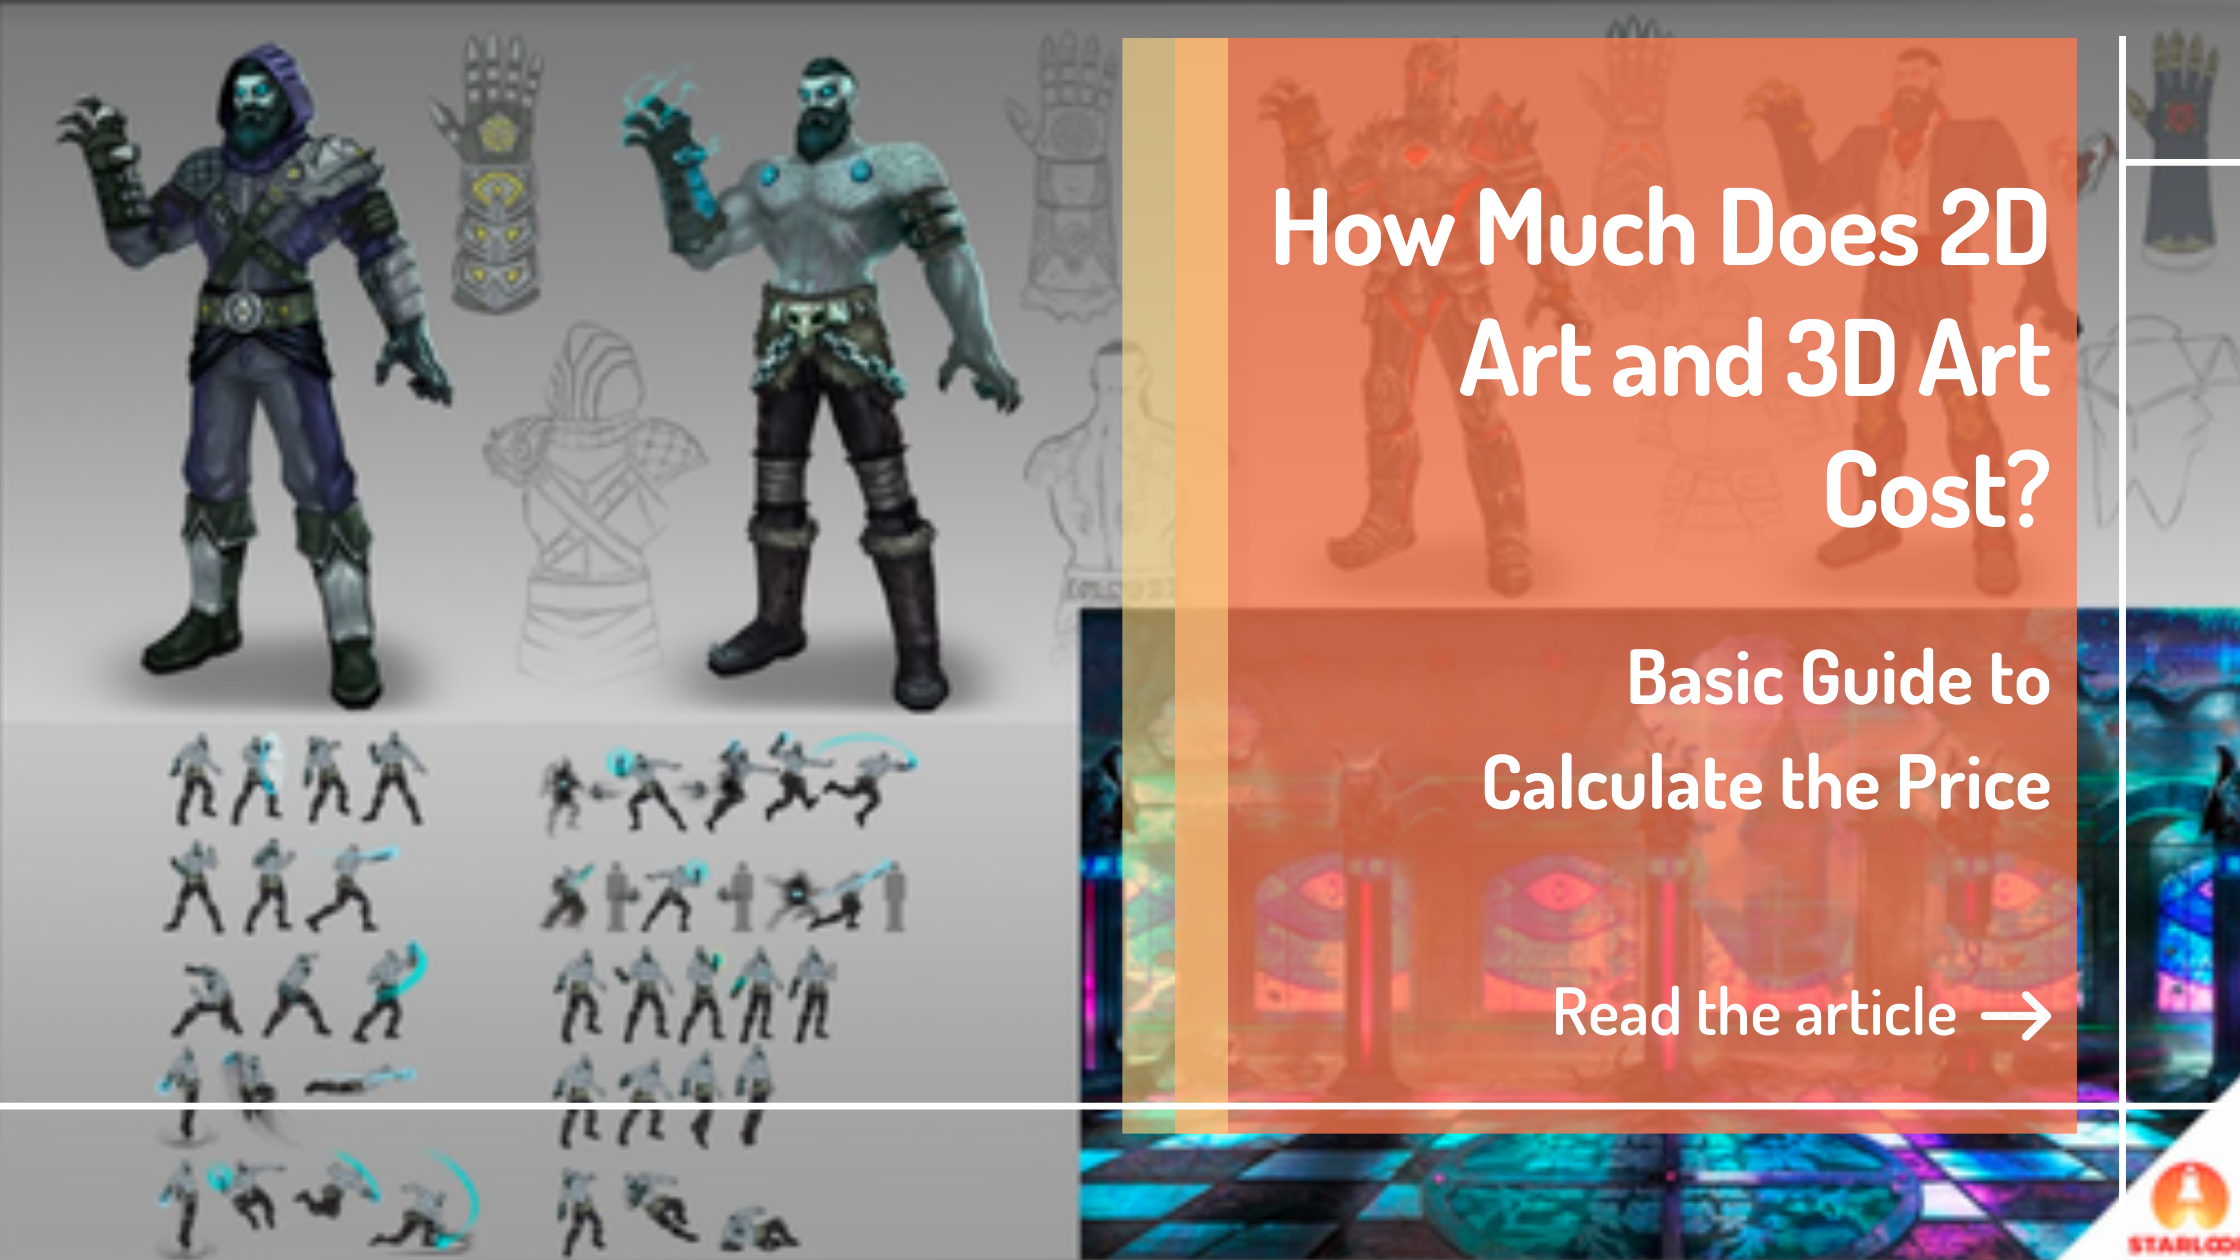 How Much Does 2D Art and 3D Art Cost main banner